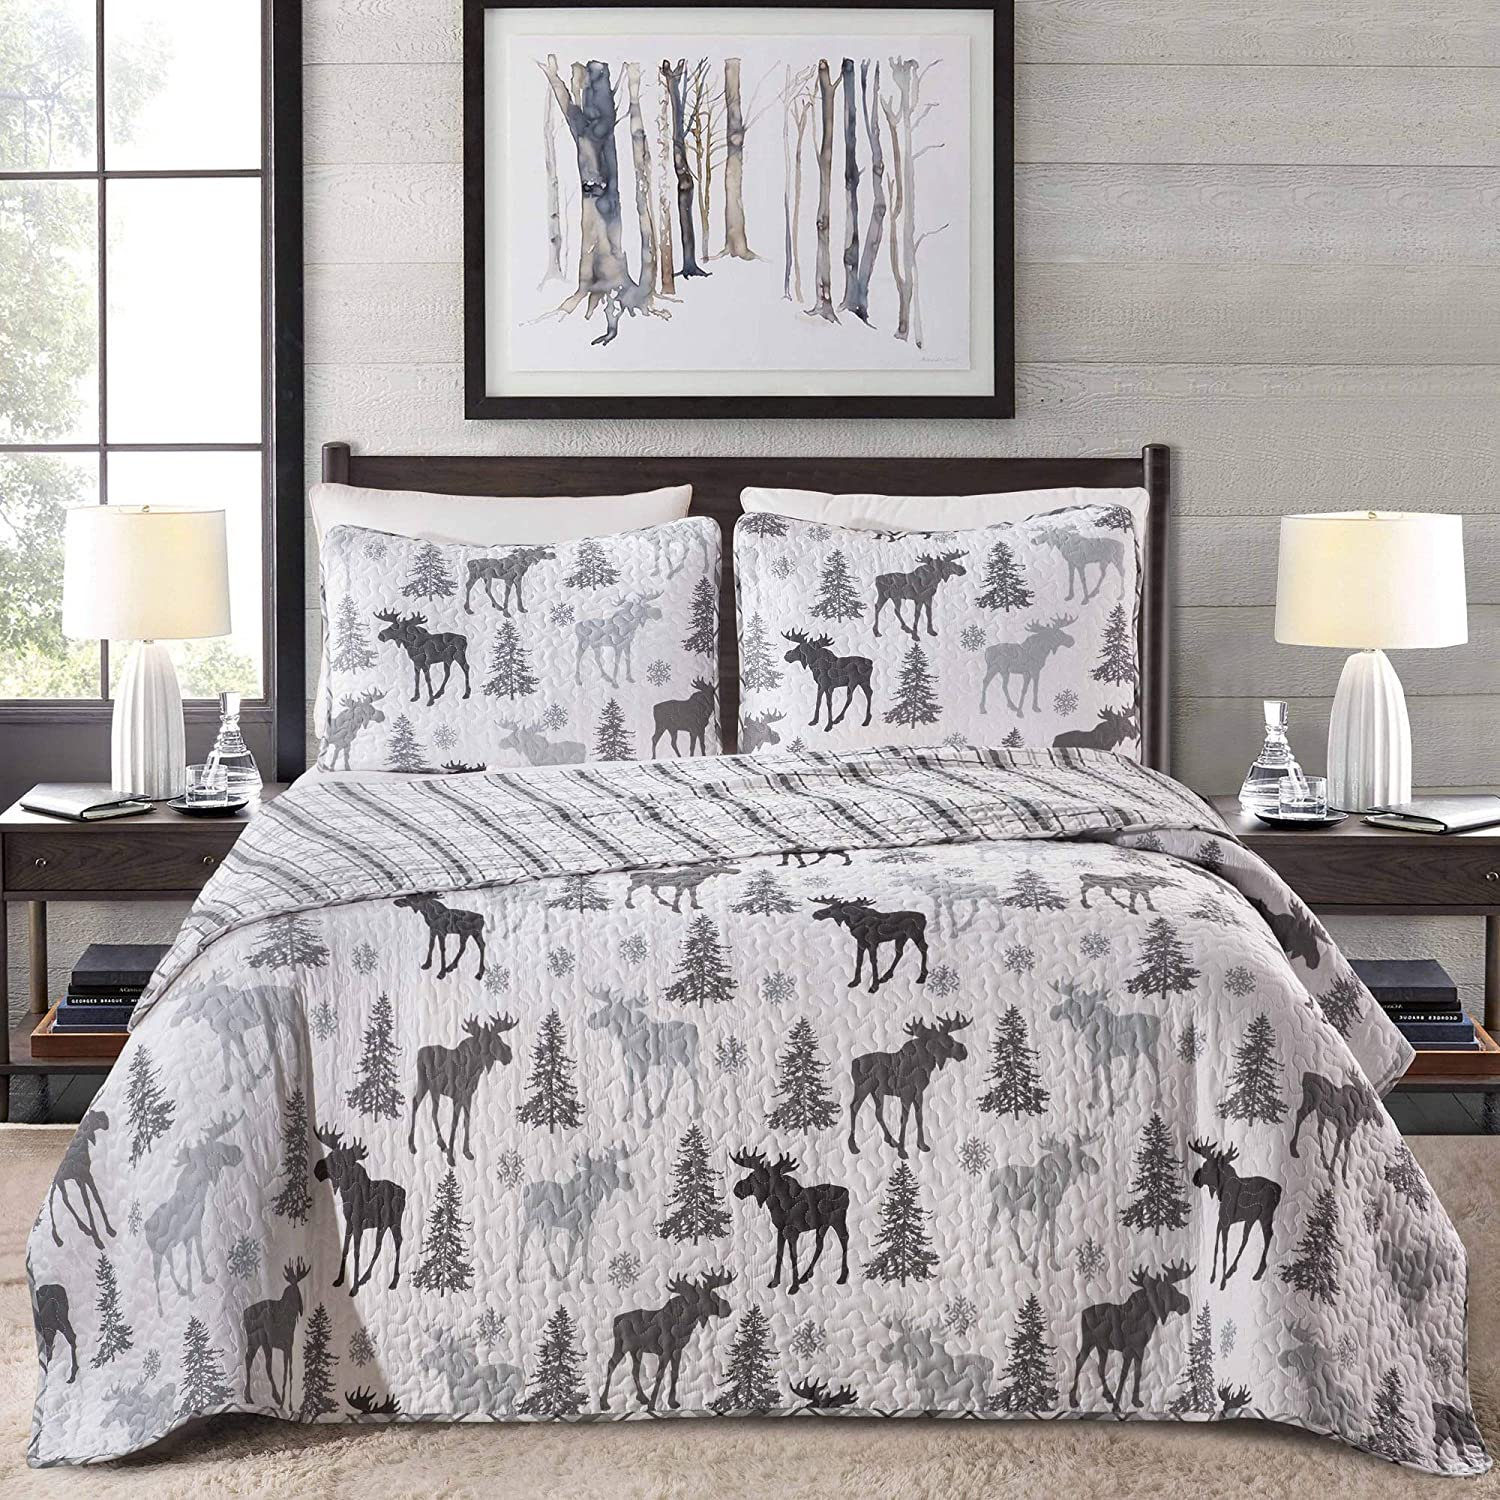 Lodge Bedspread Full/Queen Size Quilt with 2 Shams. Cabin 3-Piece Reversible All Season Quilt Set. Rustic Quilt Coverlet Bed Set. Wilderness Collection (Moose - Grey)